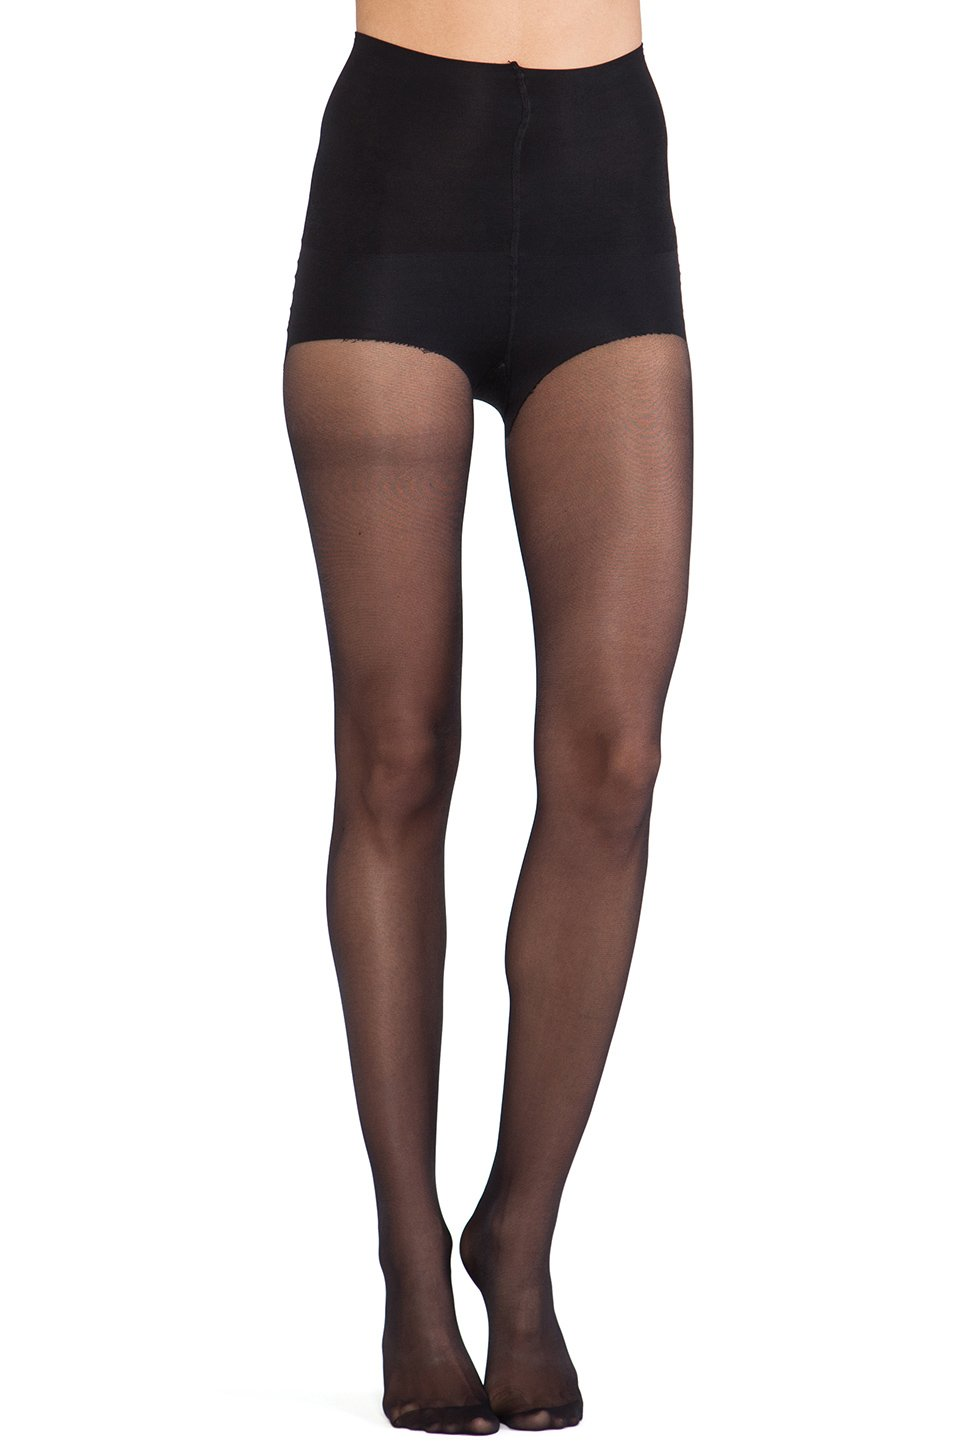 a8c0b804b Pretty Polly Shape It Up Tum And Bum Shaper Tights in Black - Lyst